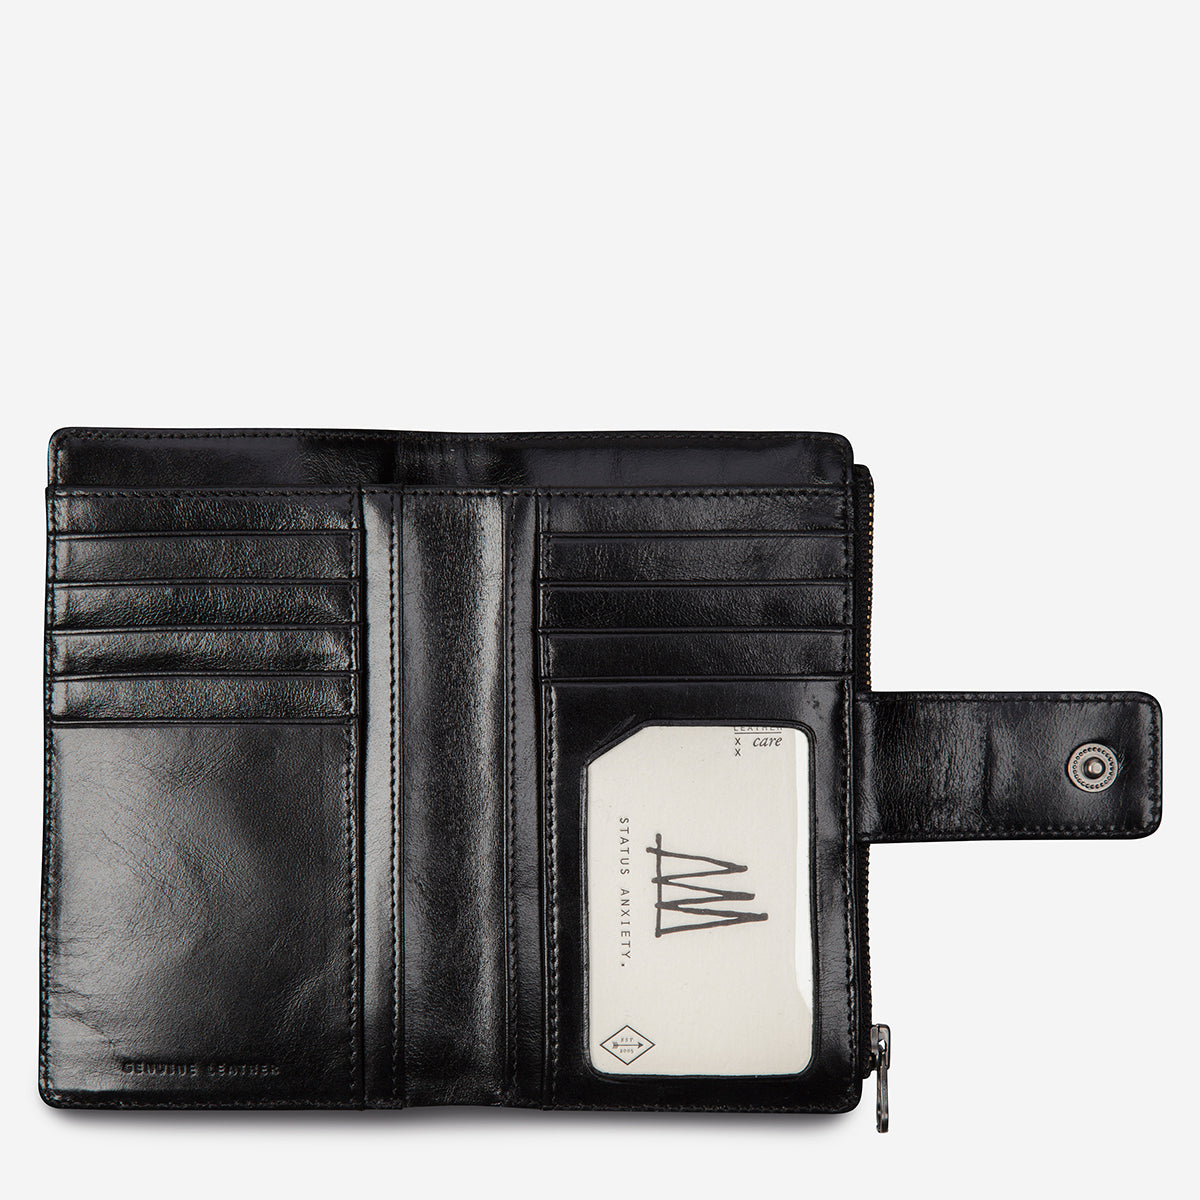 Status Anxiety Outsider Women's Leather Wallet - Black